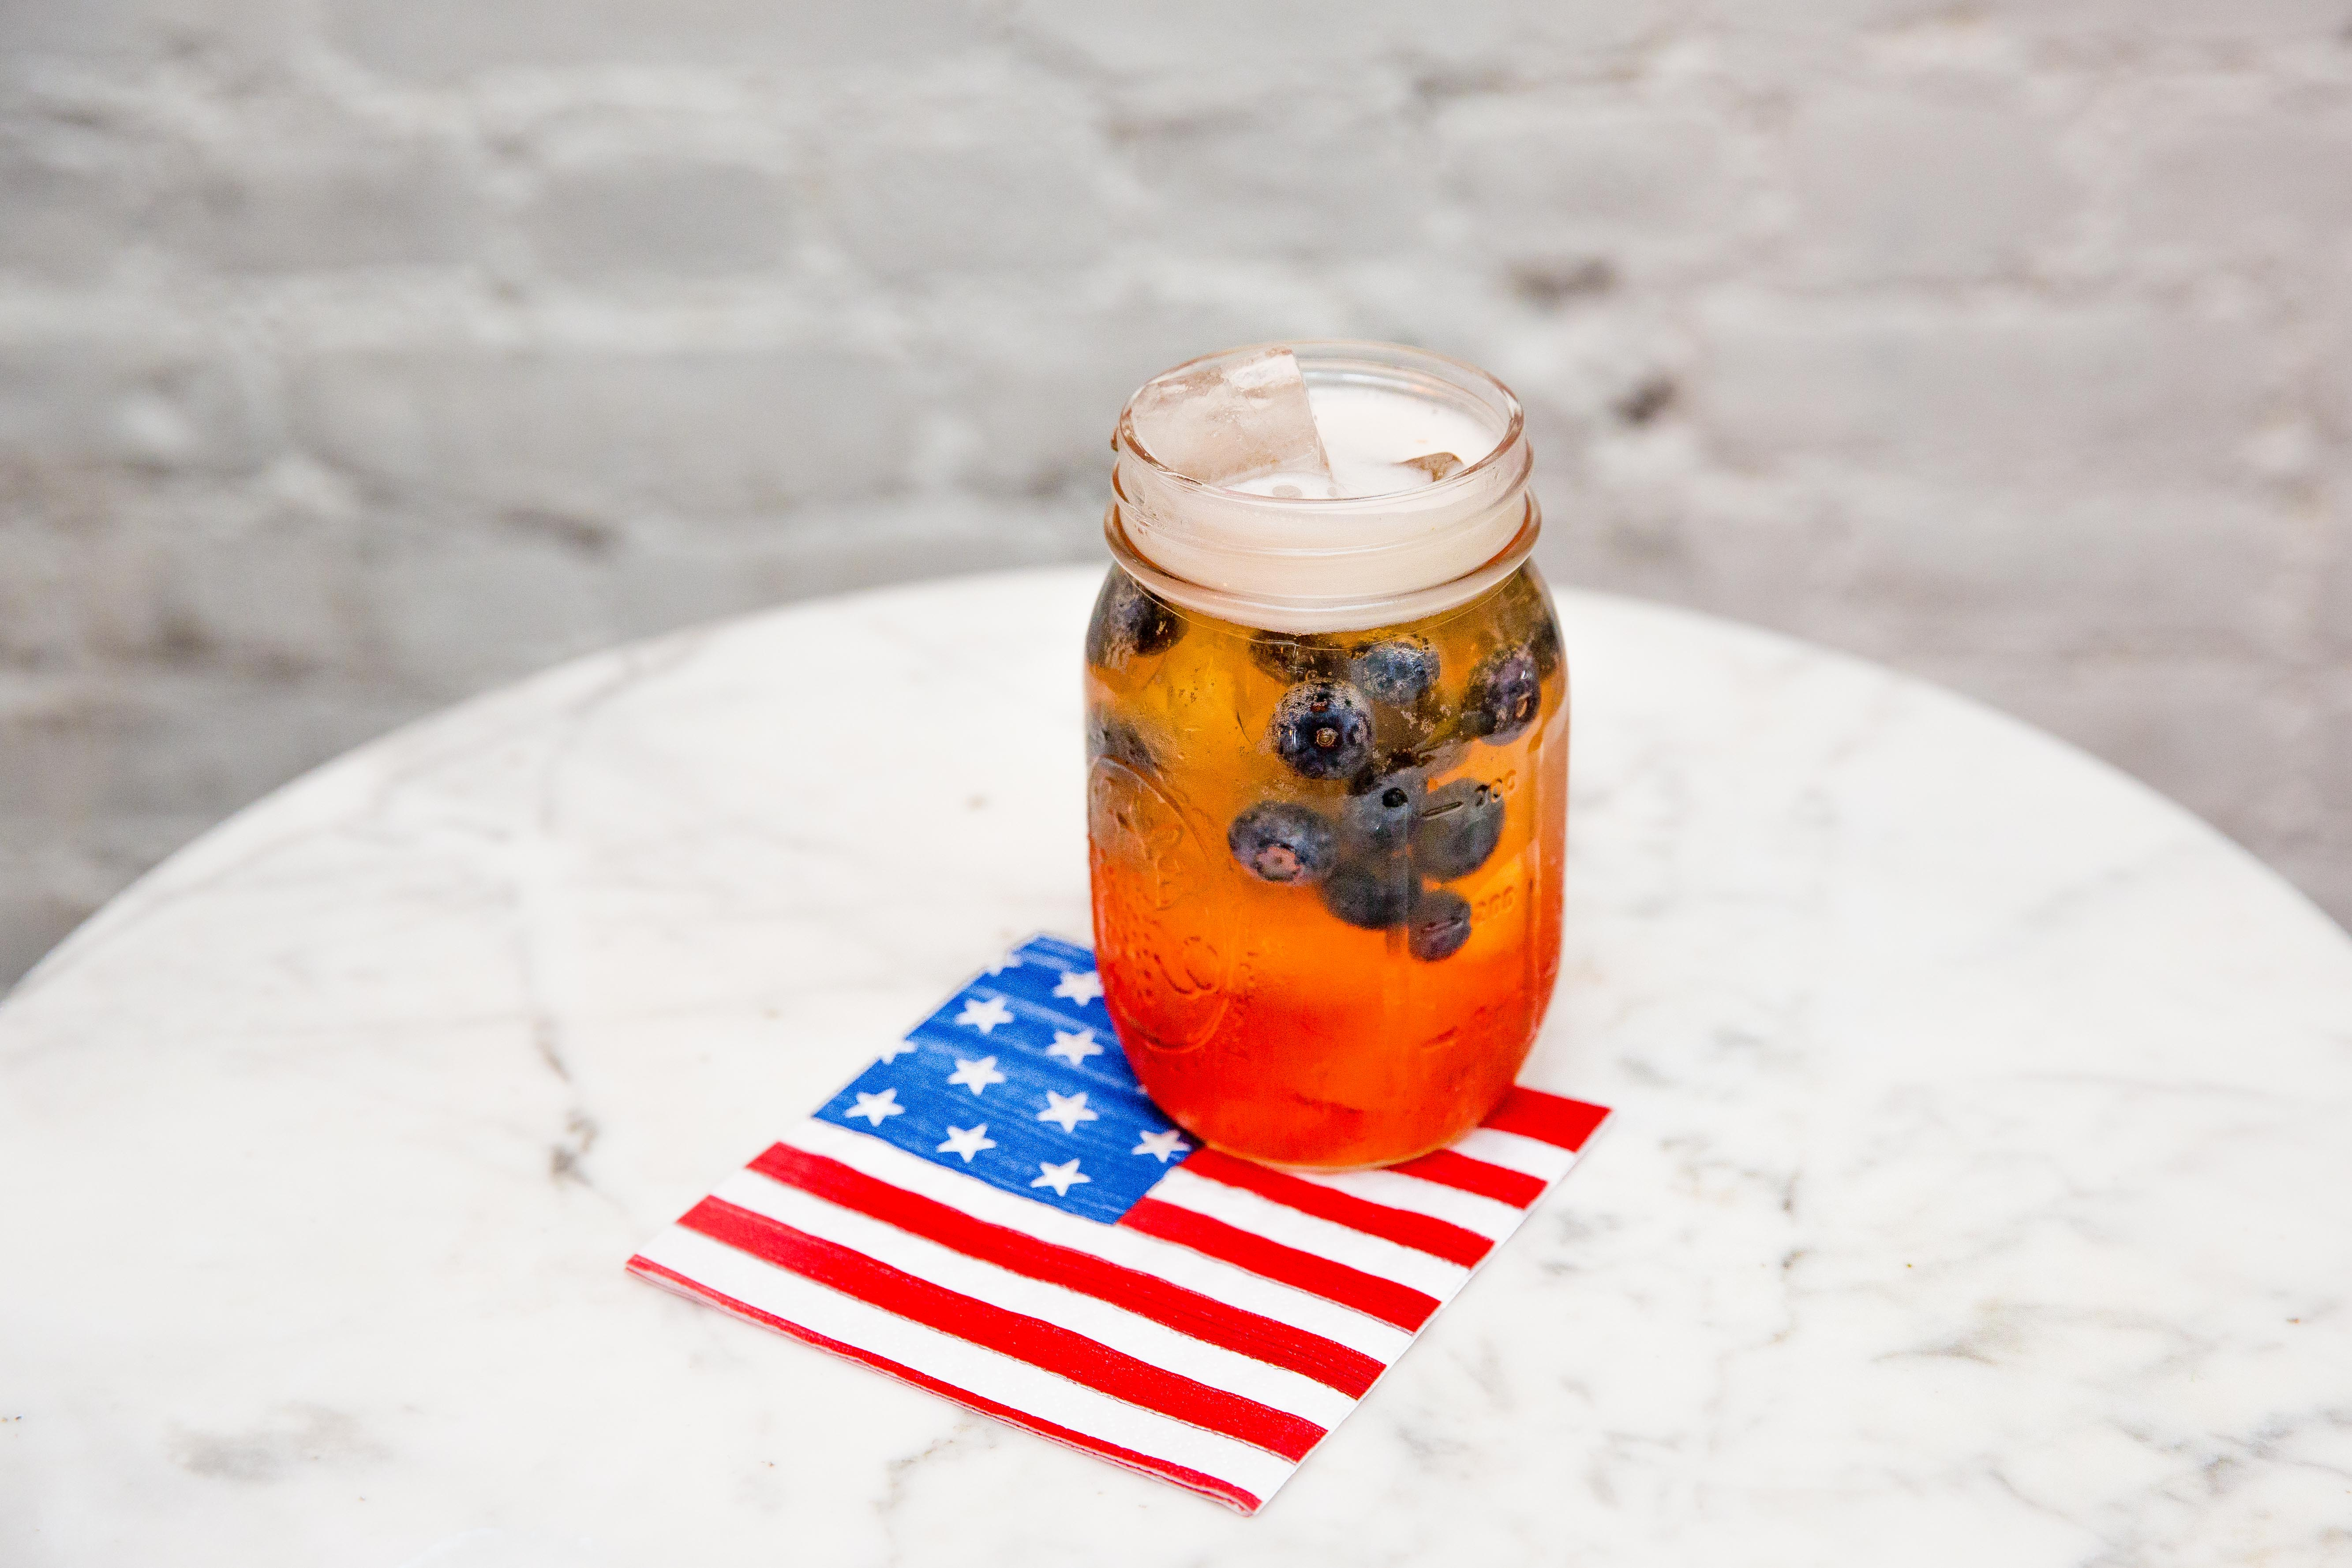 This cocktail, called Stars + Stripes, is made with Domaine de Canton Ginger Liqueur, Aperol and Schofferhofer grapefruit beer. It is garnished with blueberries or a slice of grapefruit.